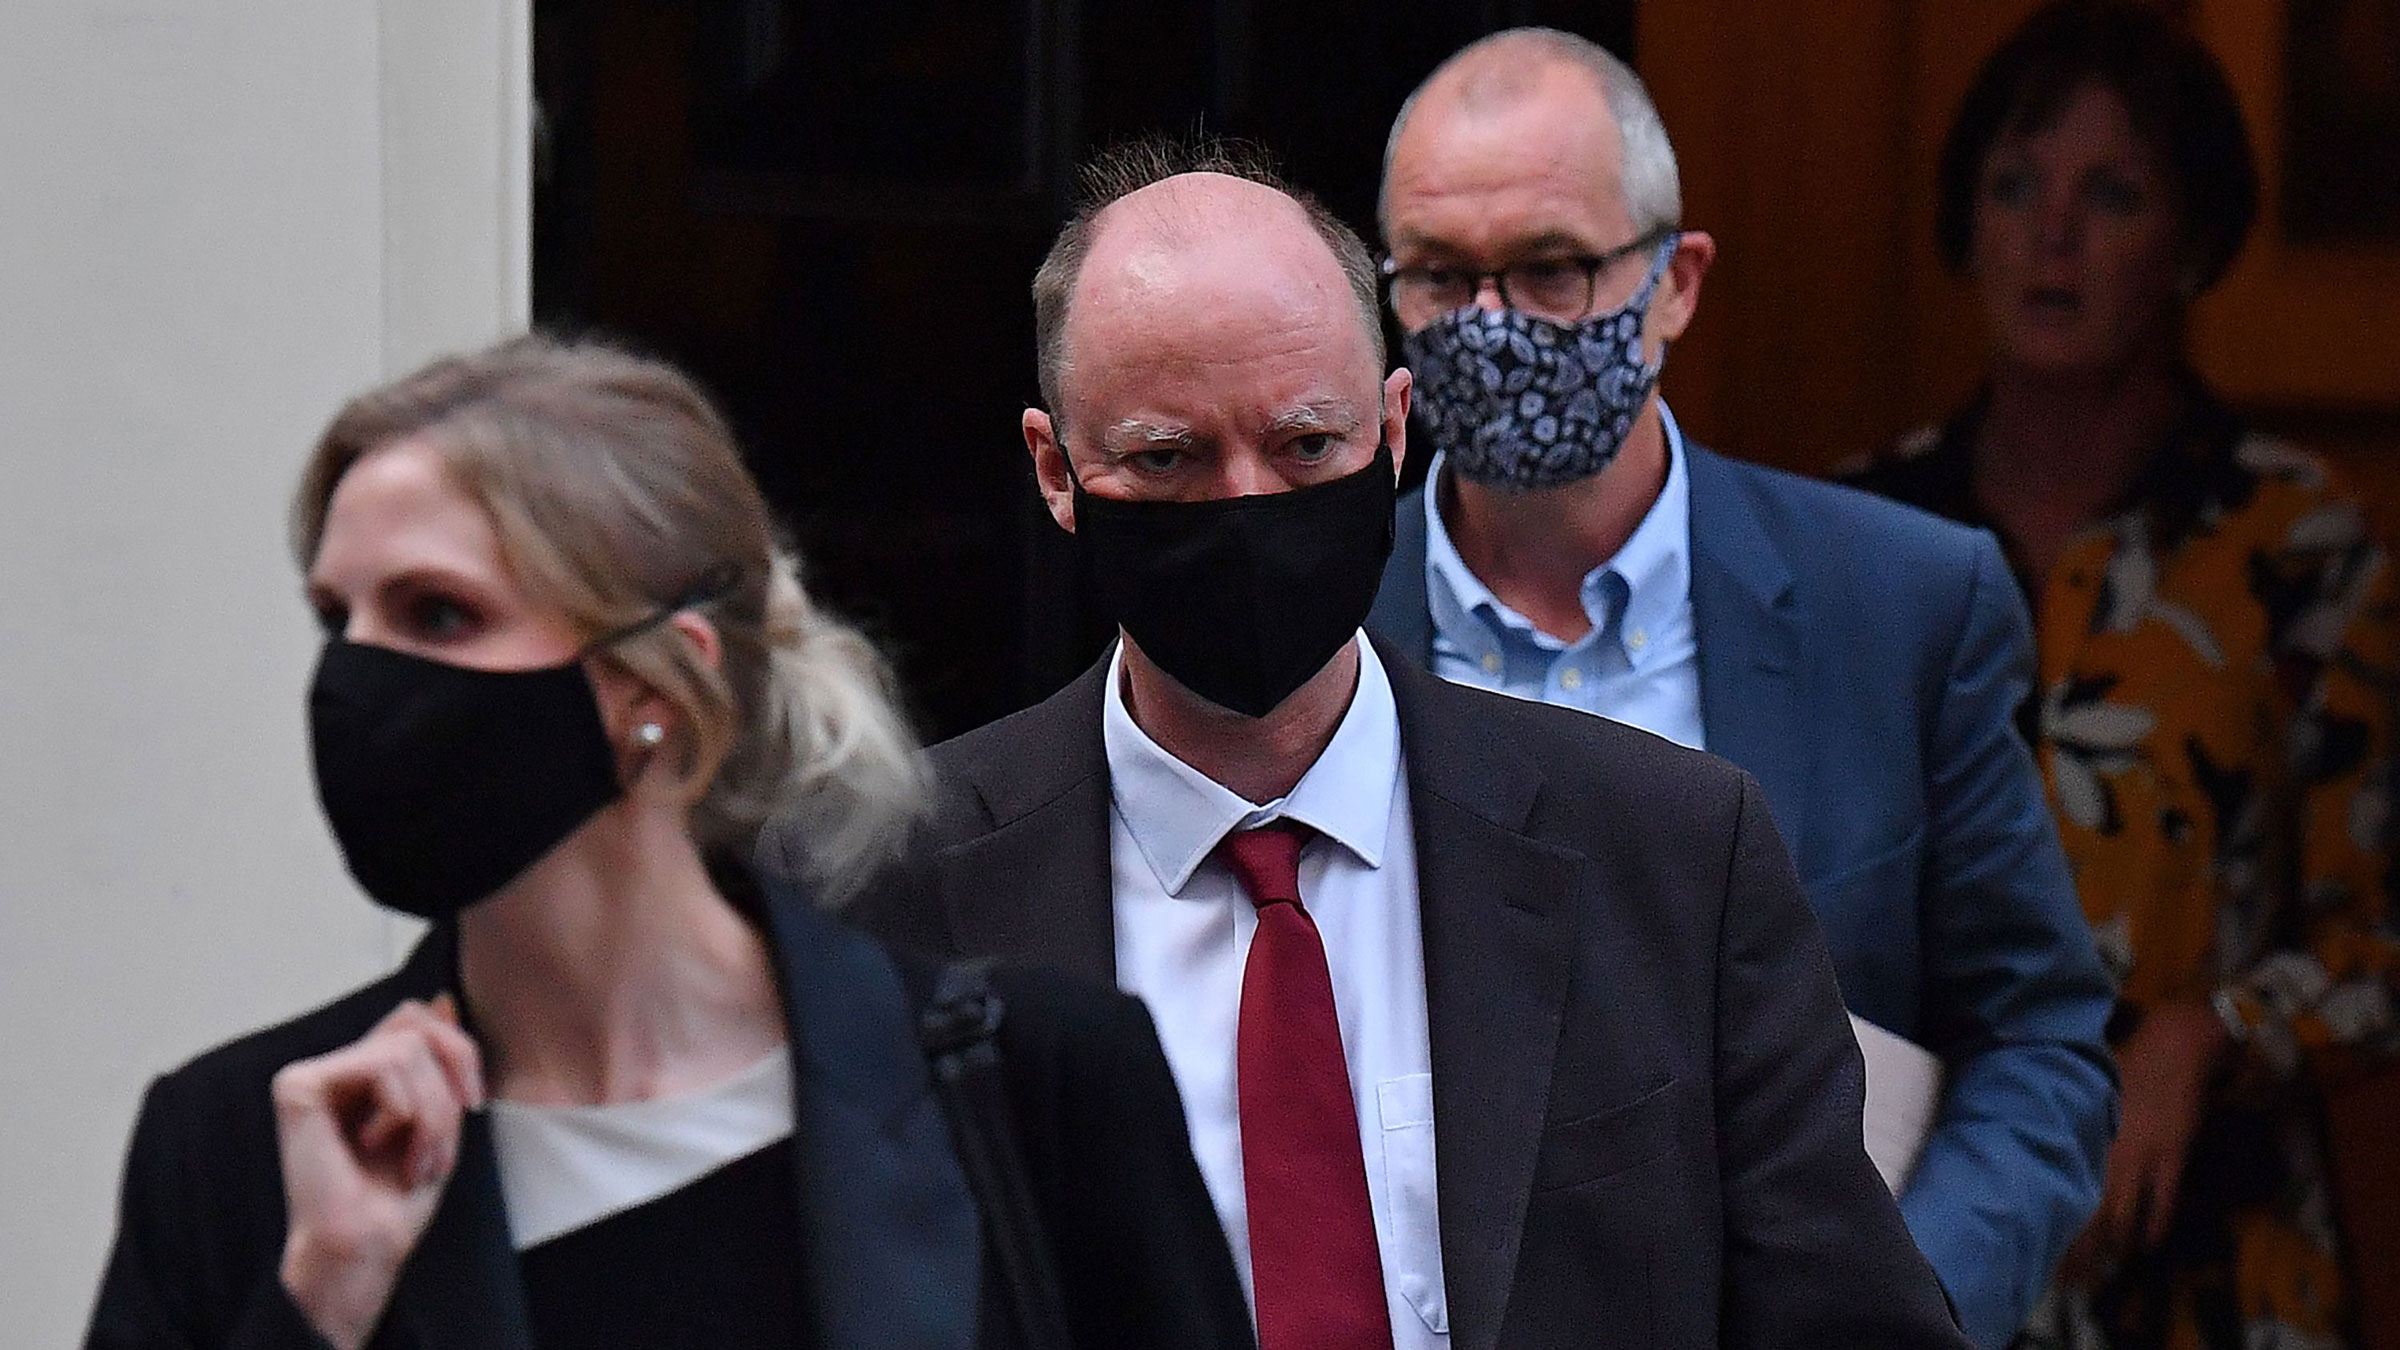 England Chief Medical Officer Chris Whitty, second from left, leaves 11 Downing Street in London on Monday.